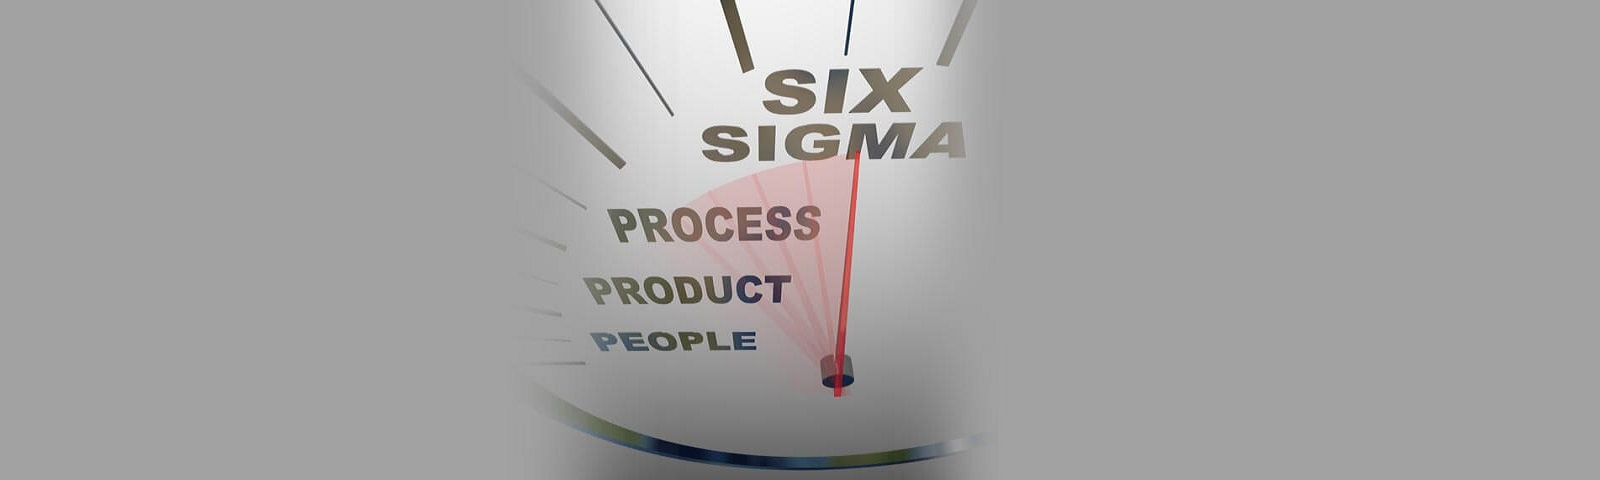 Six Sigma,Process,Product,People